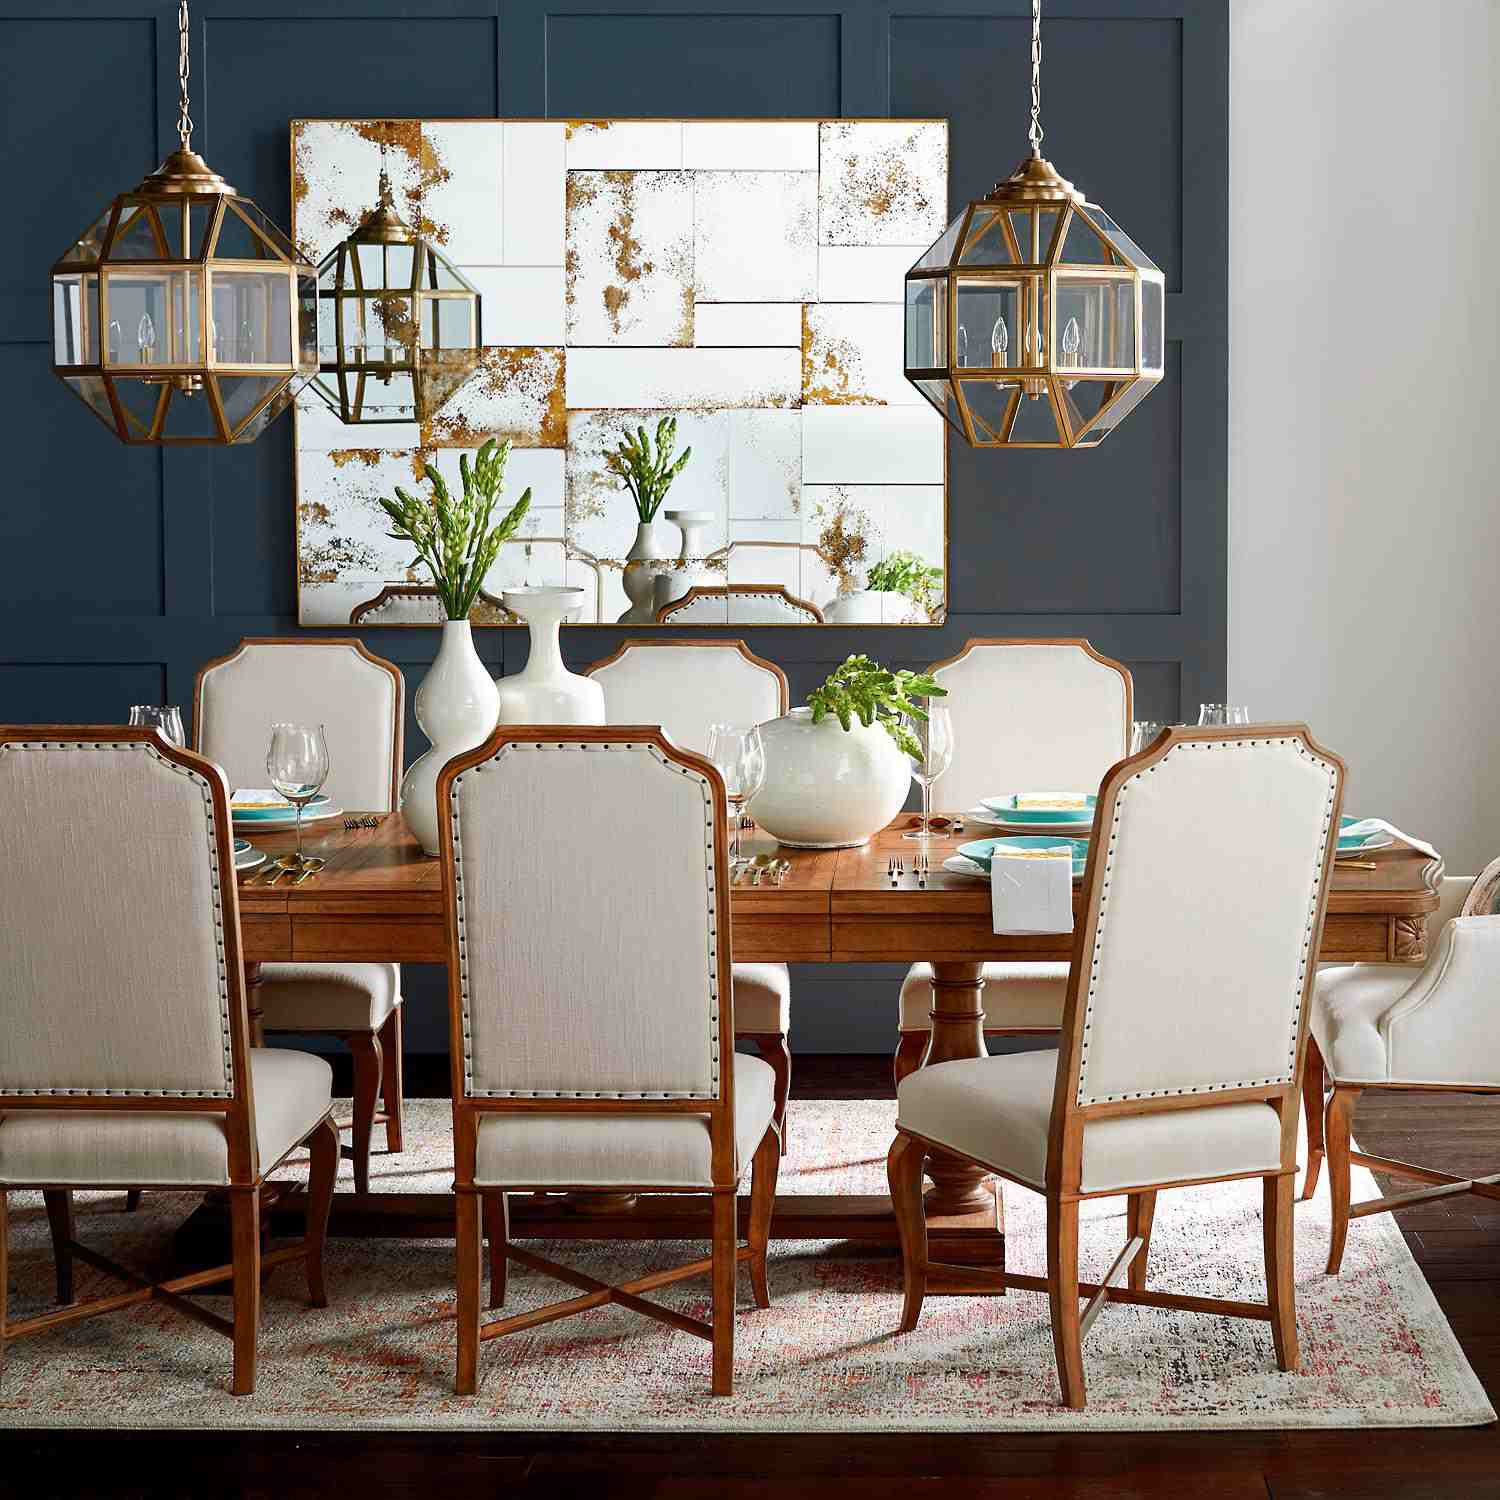 Best Place For Furniture: The Best Places To Buy Dining Room Furniture In 2020